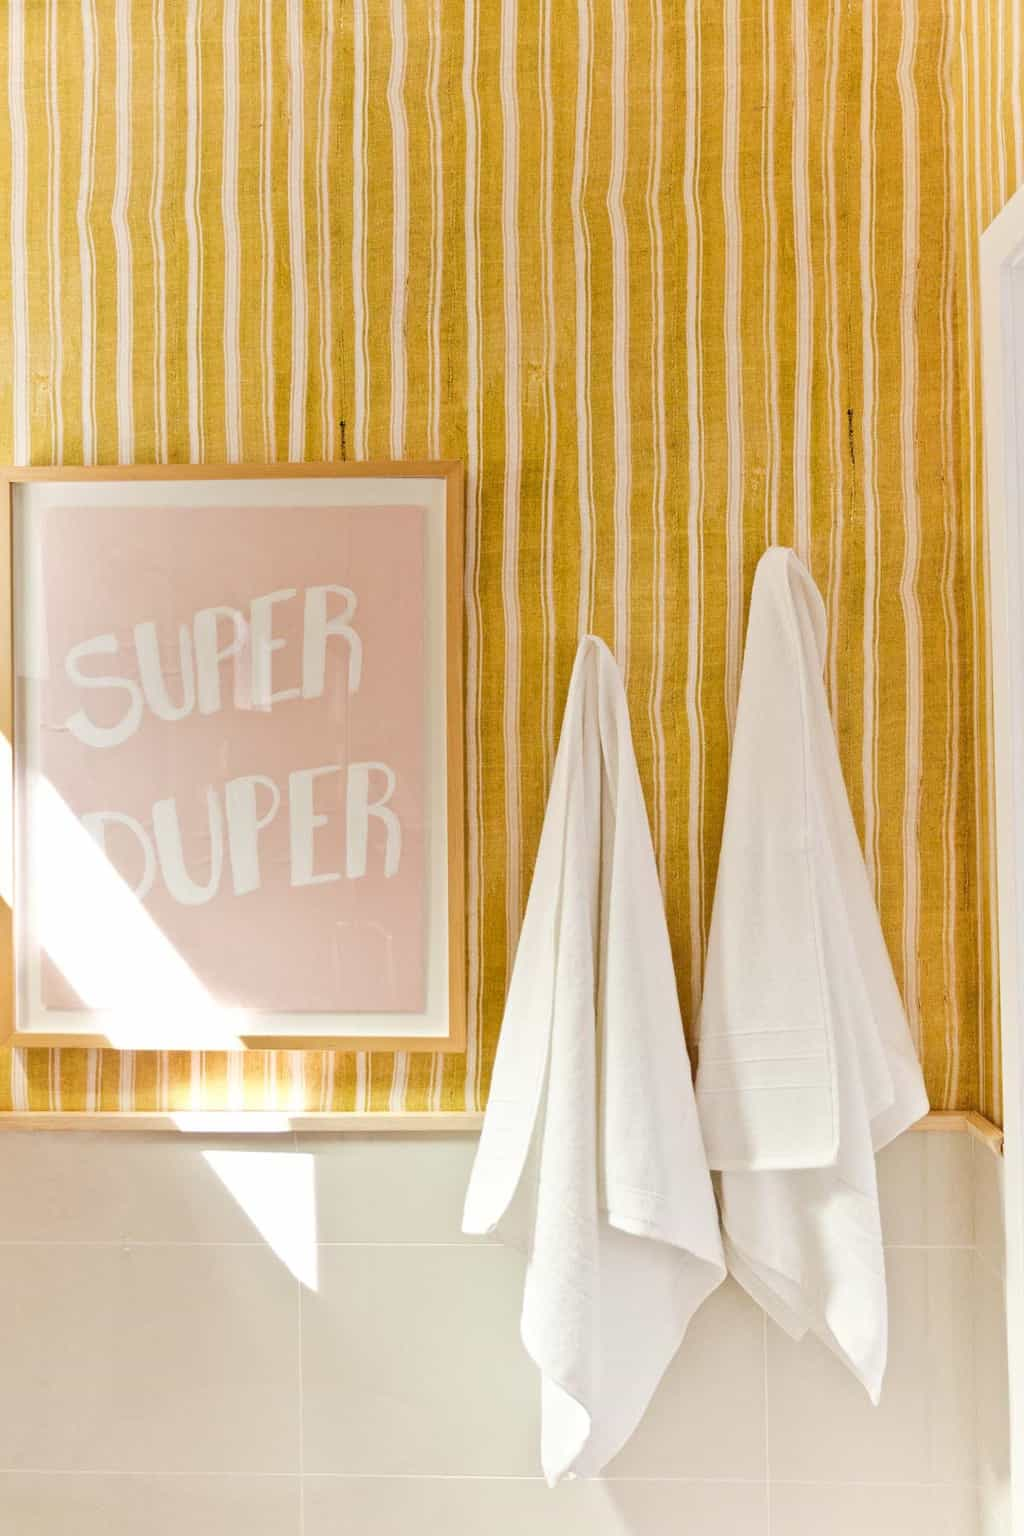 Super Duper graphic artwork in bold bathroom with stripes.